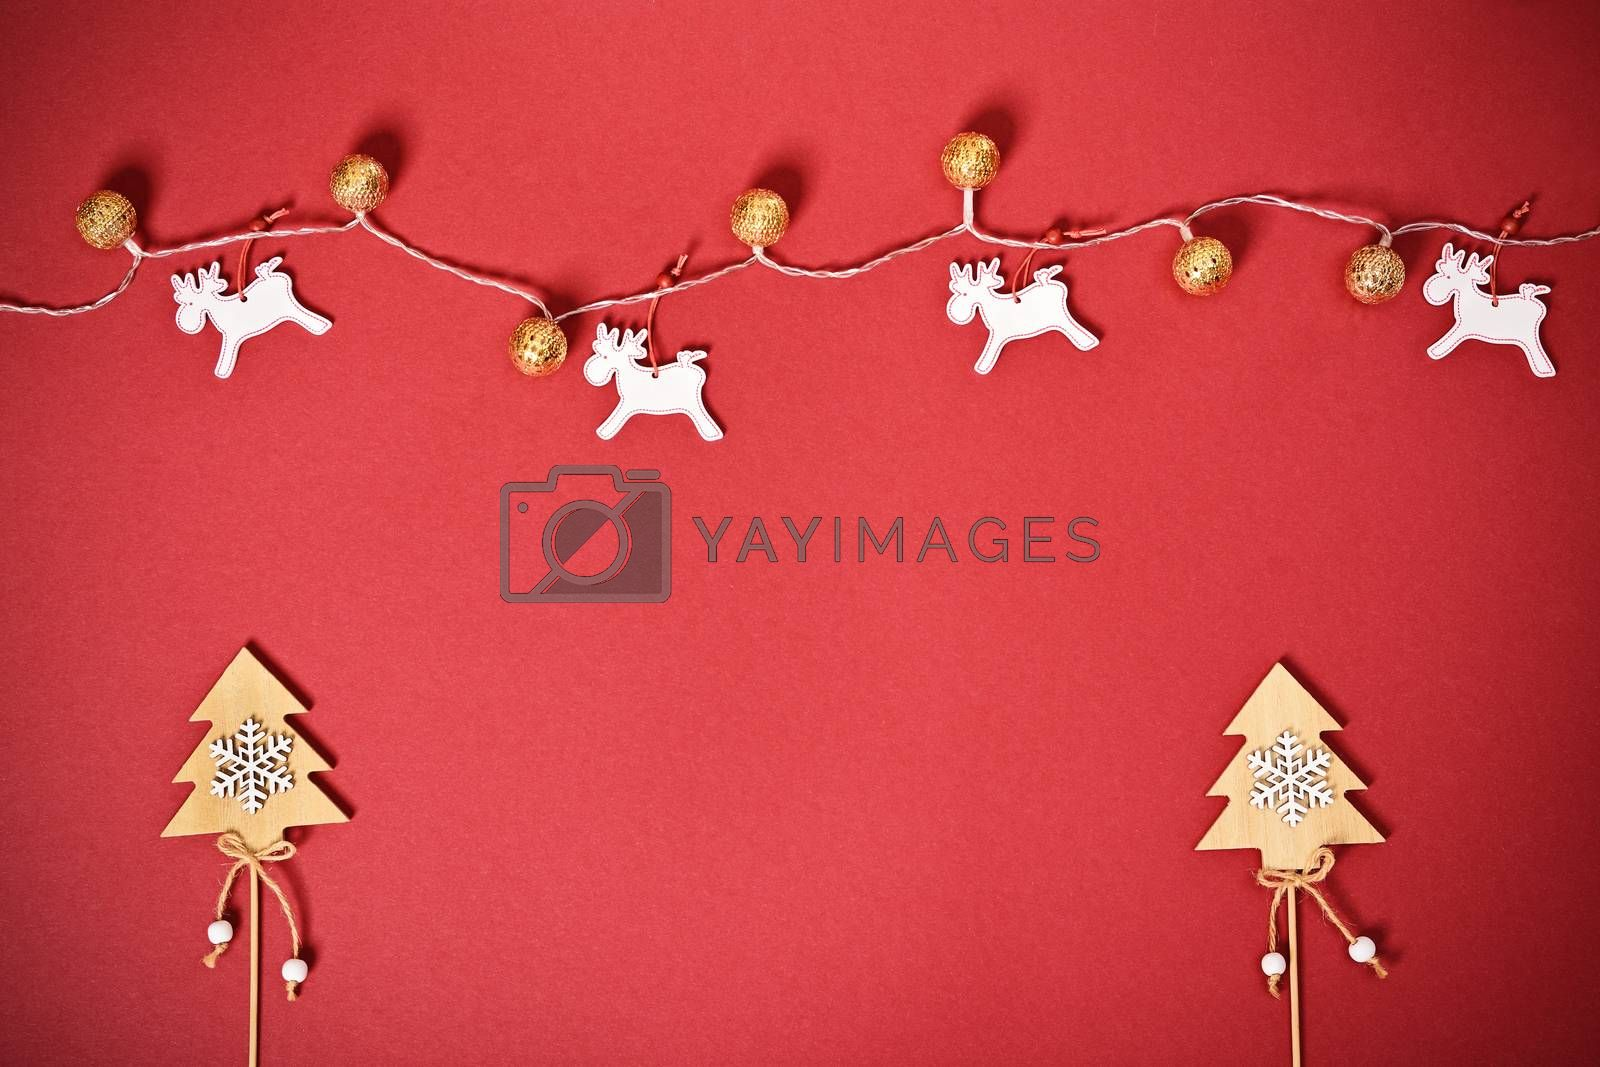 Christmas and New Year composition. Seasonal greeting card concept with Christmas trees, lights and reindeer on red background. Christmas, winter, new year concept. Flat lay, top view, copy space.